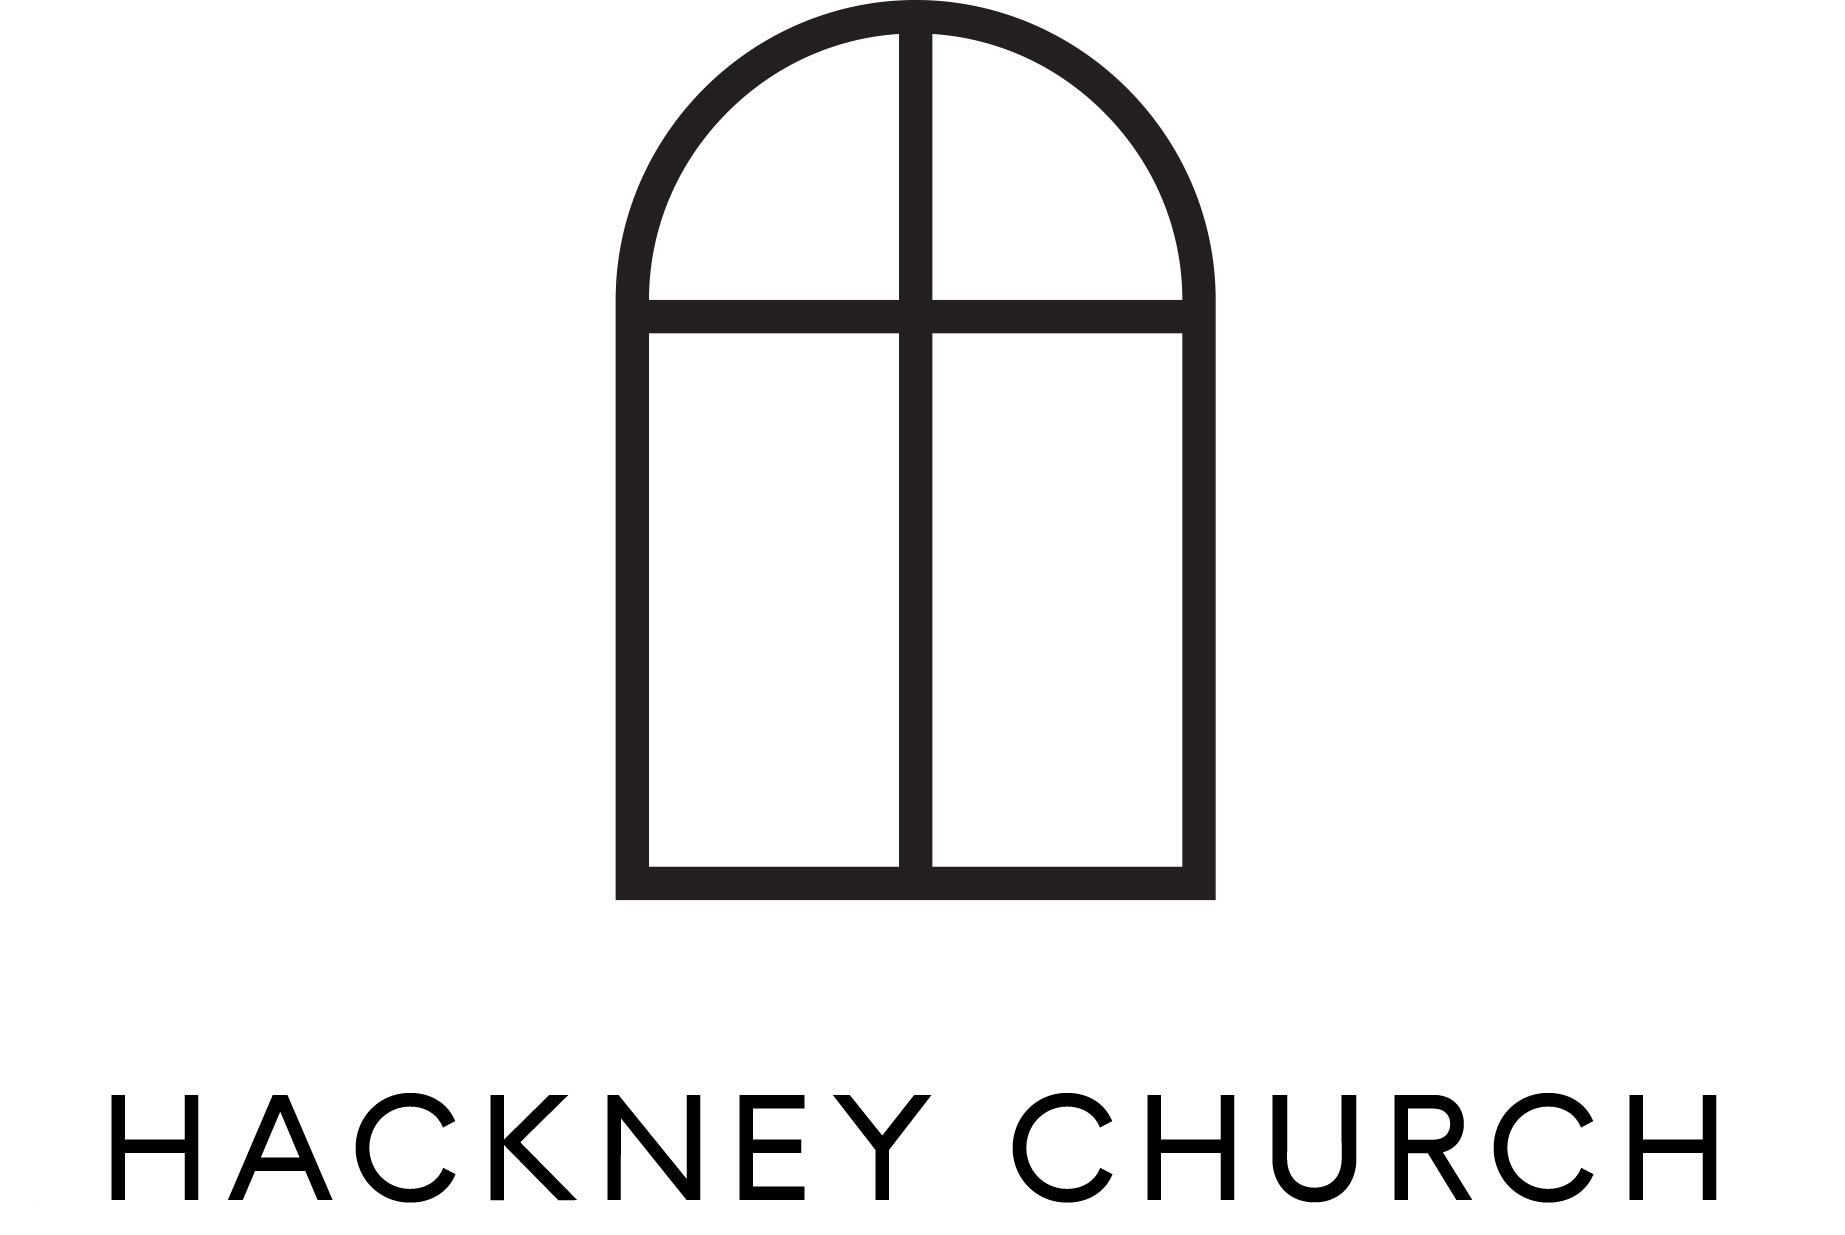 Hackney Church HI RES.jpg